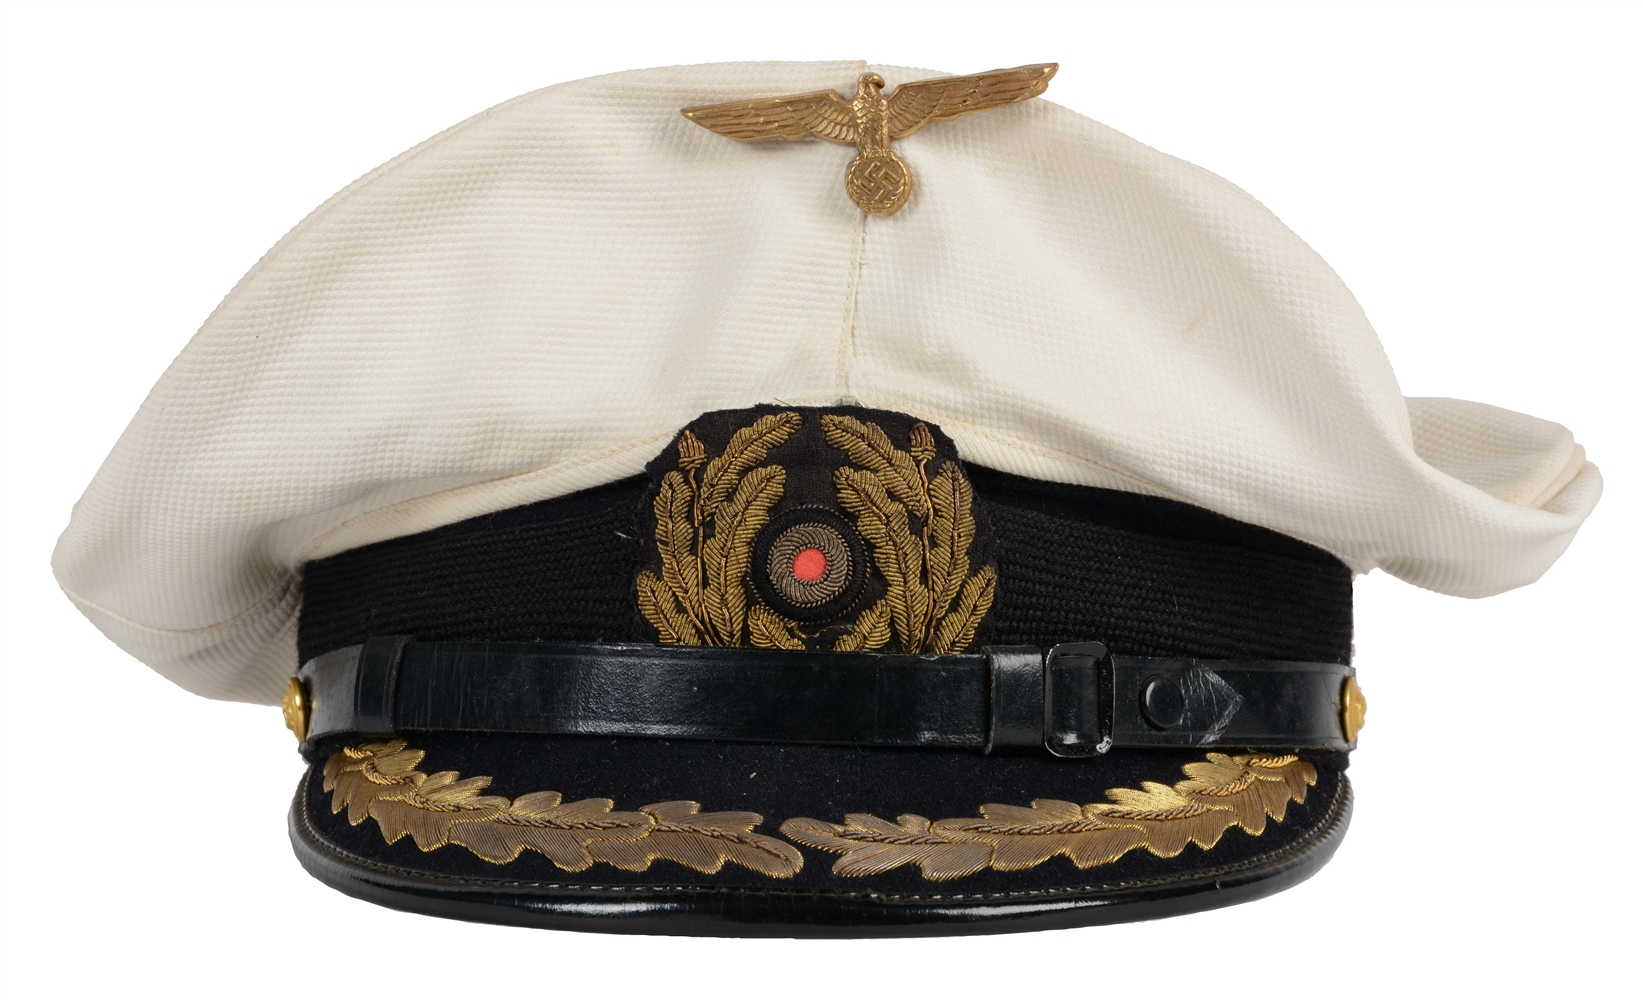 German WWII Kriegsmarine Officers Removable White Top Visor Cap.